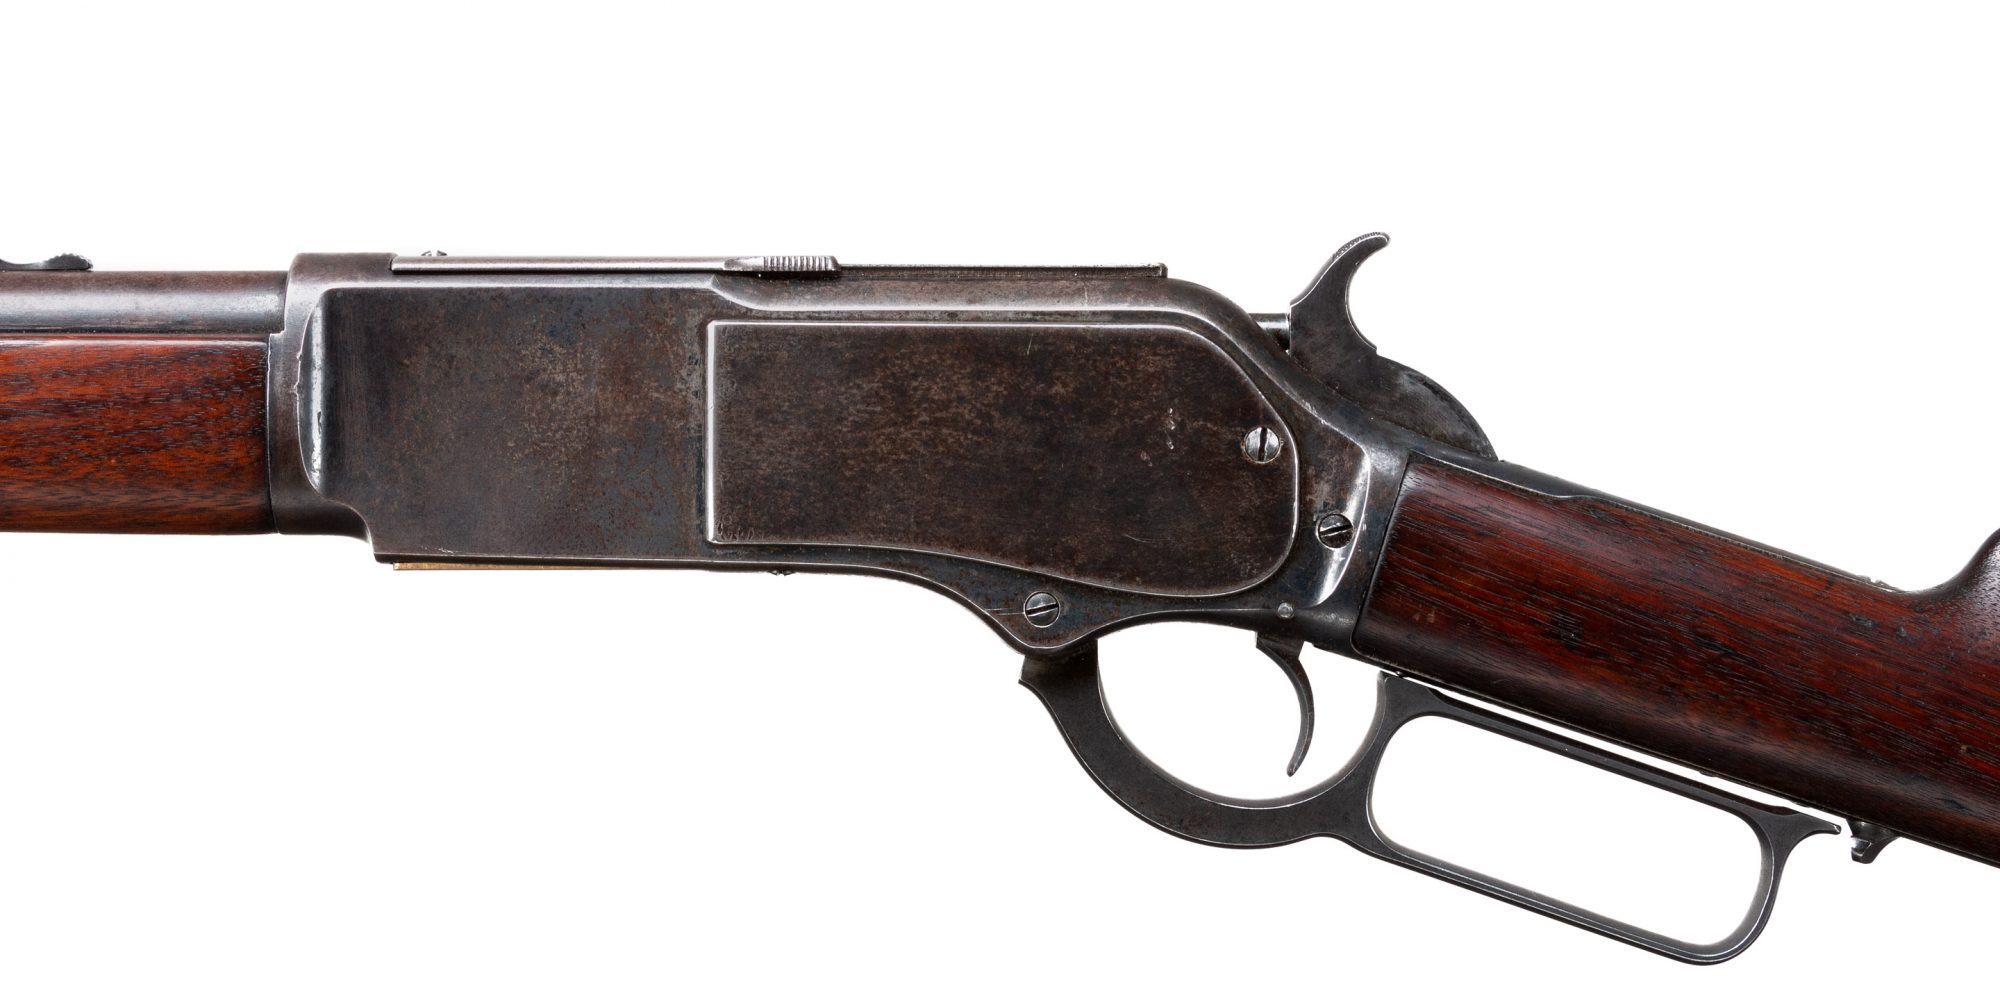 Photo of an antique Winchester Model 1876 from 1881, sold as-is by Turnbull Restoration